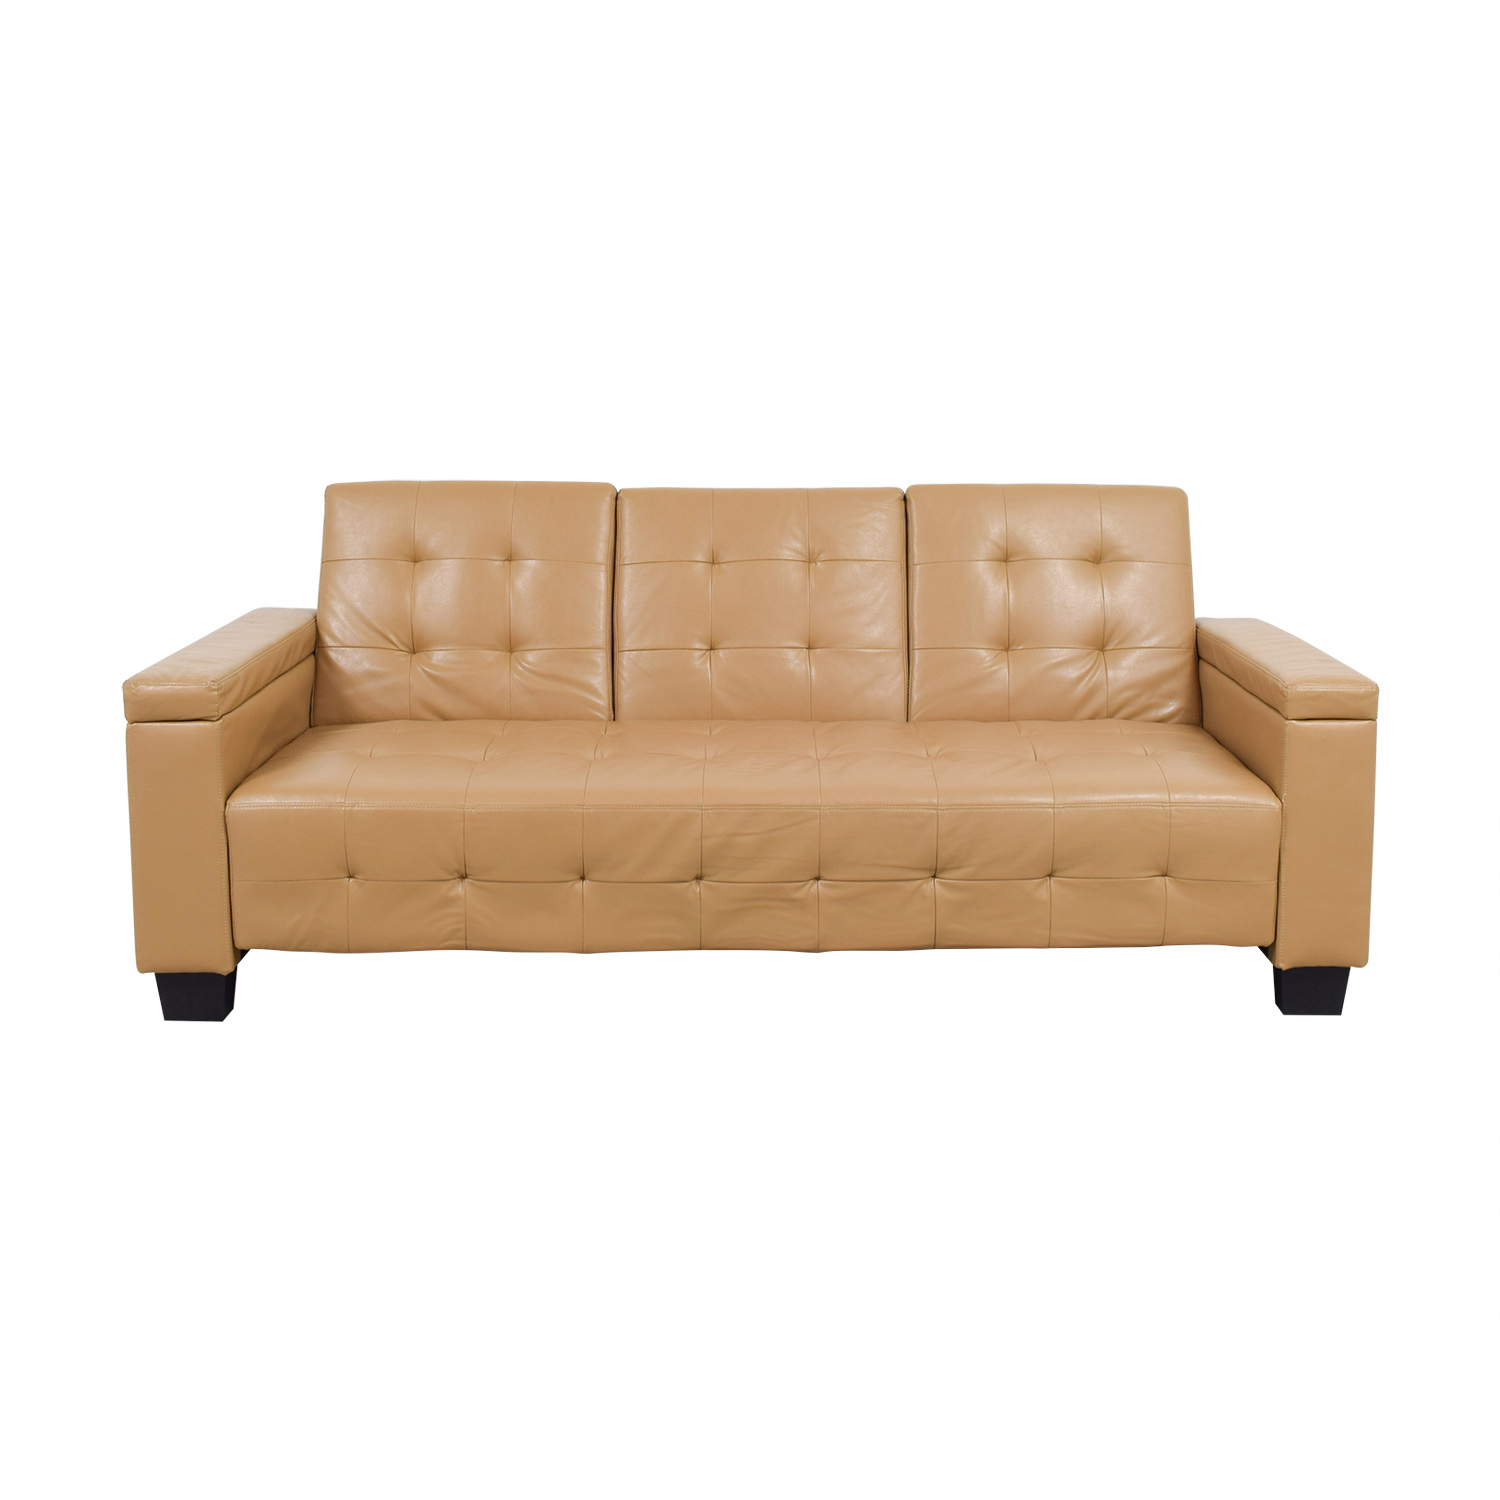 77% OFF - Tufted Khaki Leather Sofa Futon / Sofas